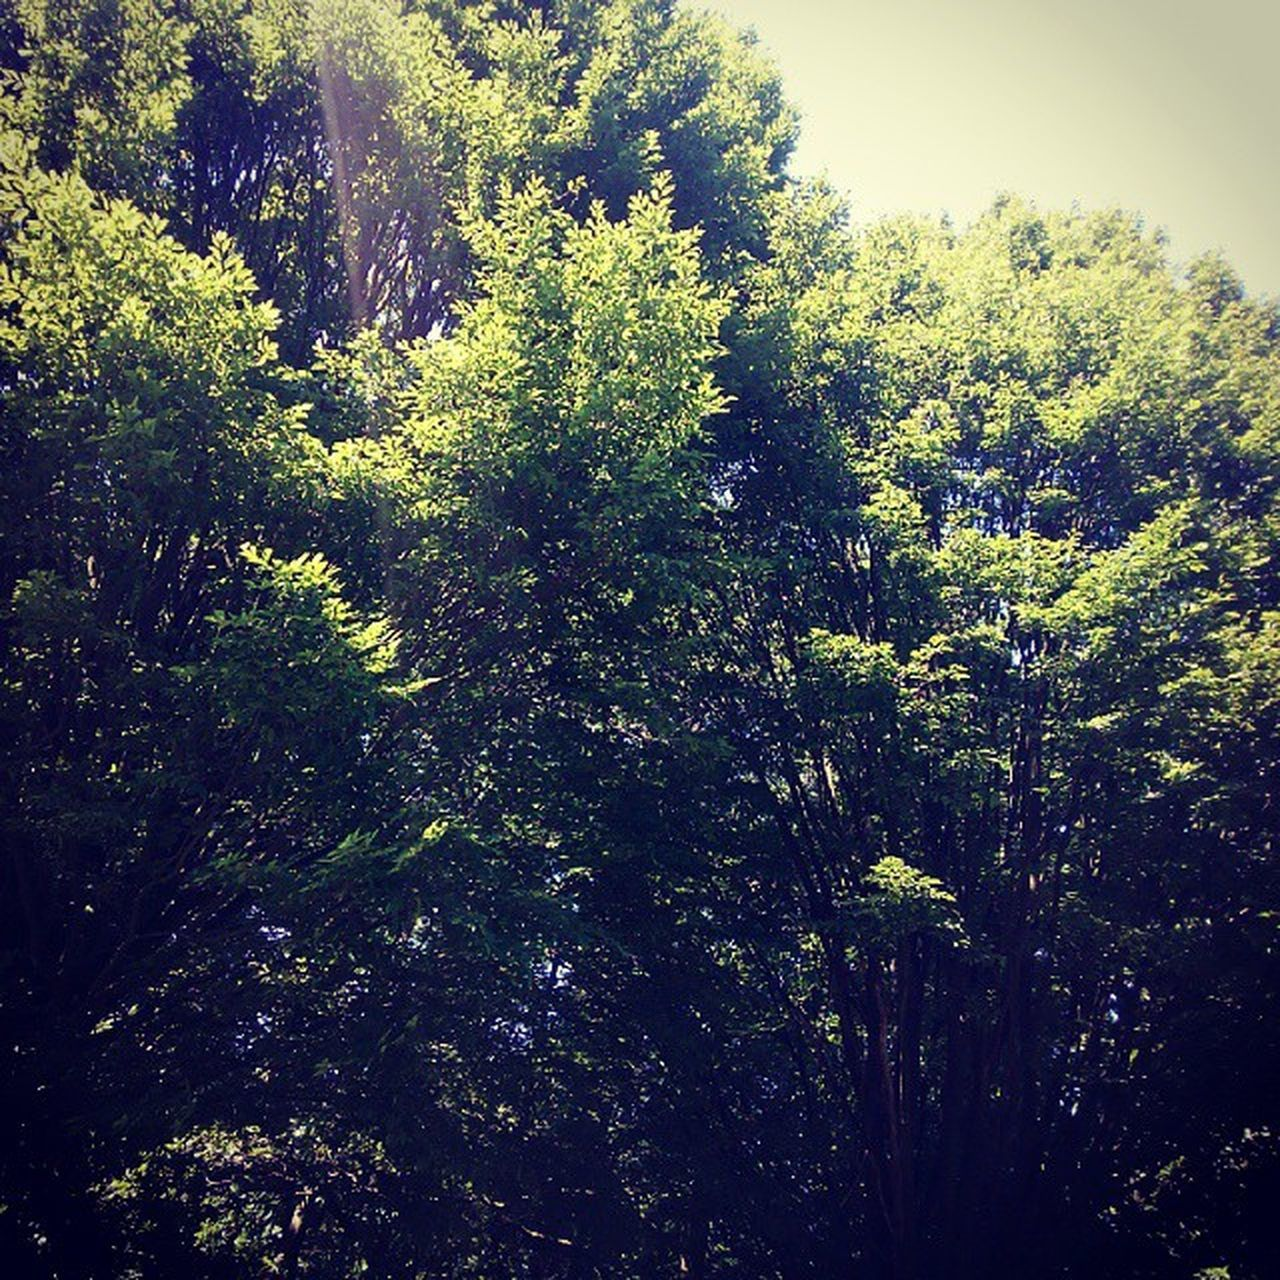 tree, nature, growth, forest, day, no people, outdoors, beauty in nature